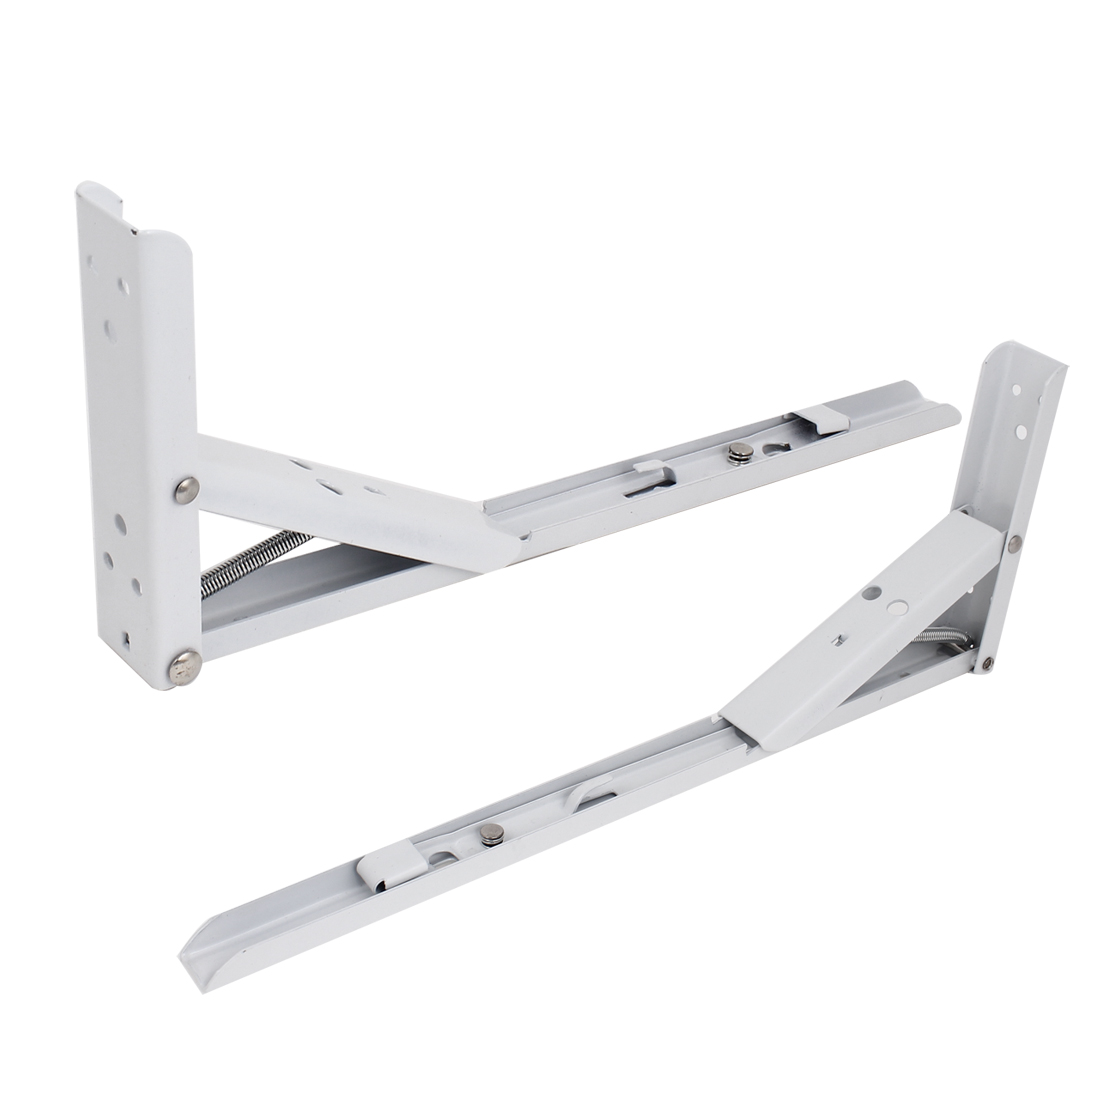 "13.4"" Long Wall Mounted Spring Loaded Folding Shelf Support Brackets Brace 2 Pcs"